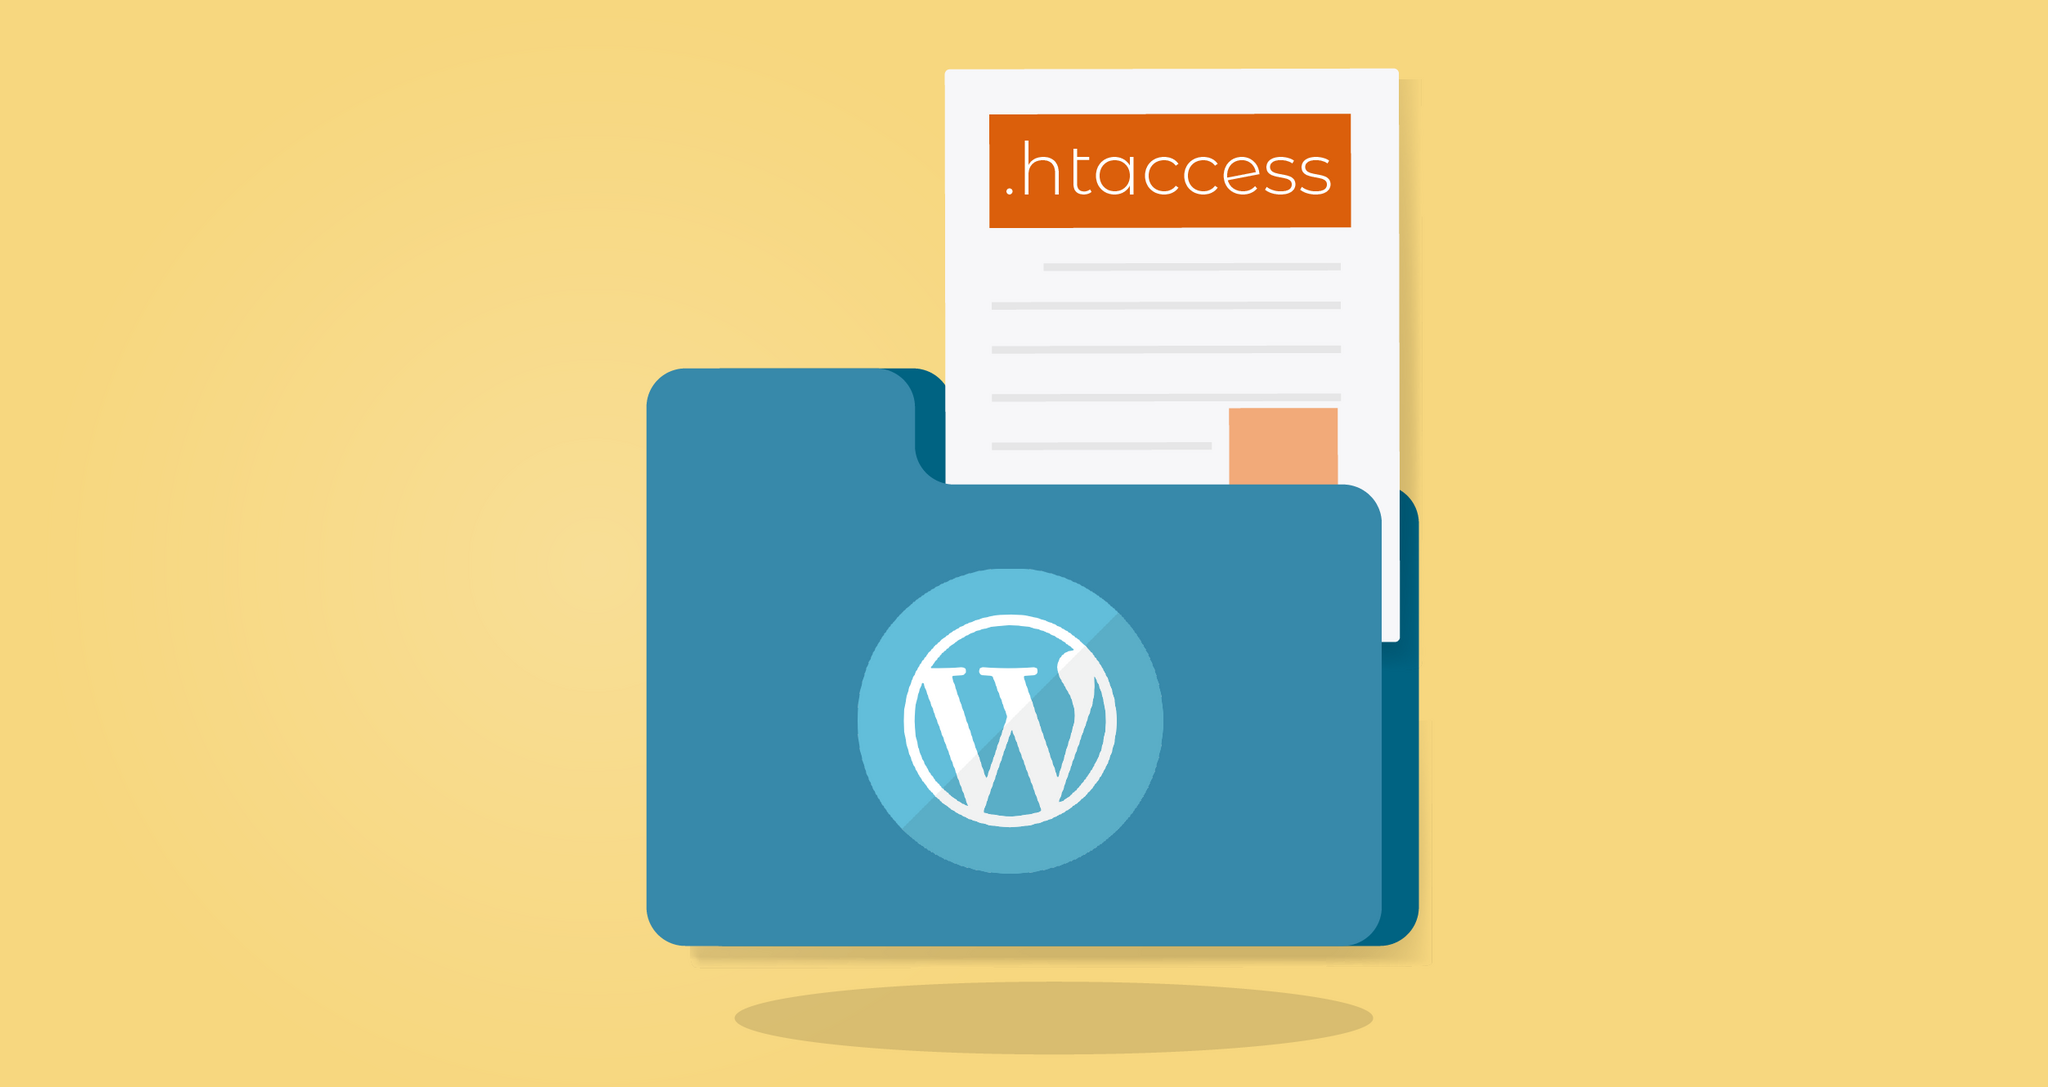 htaccess wordpress